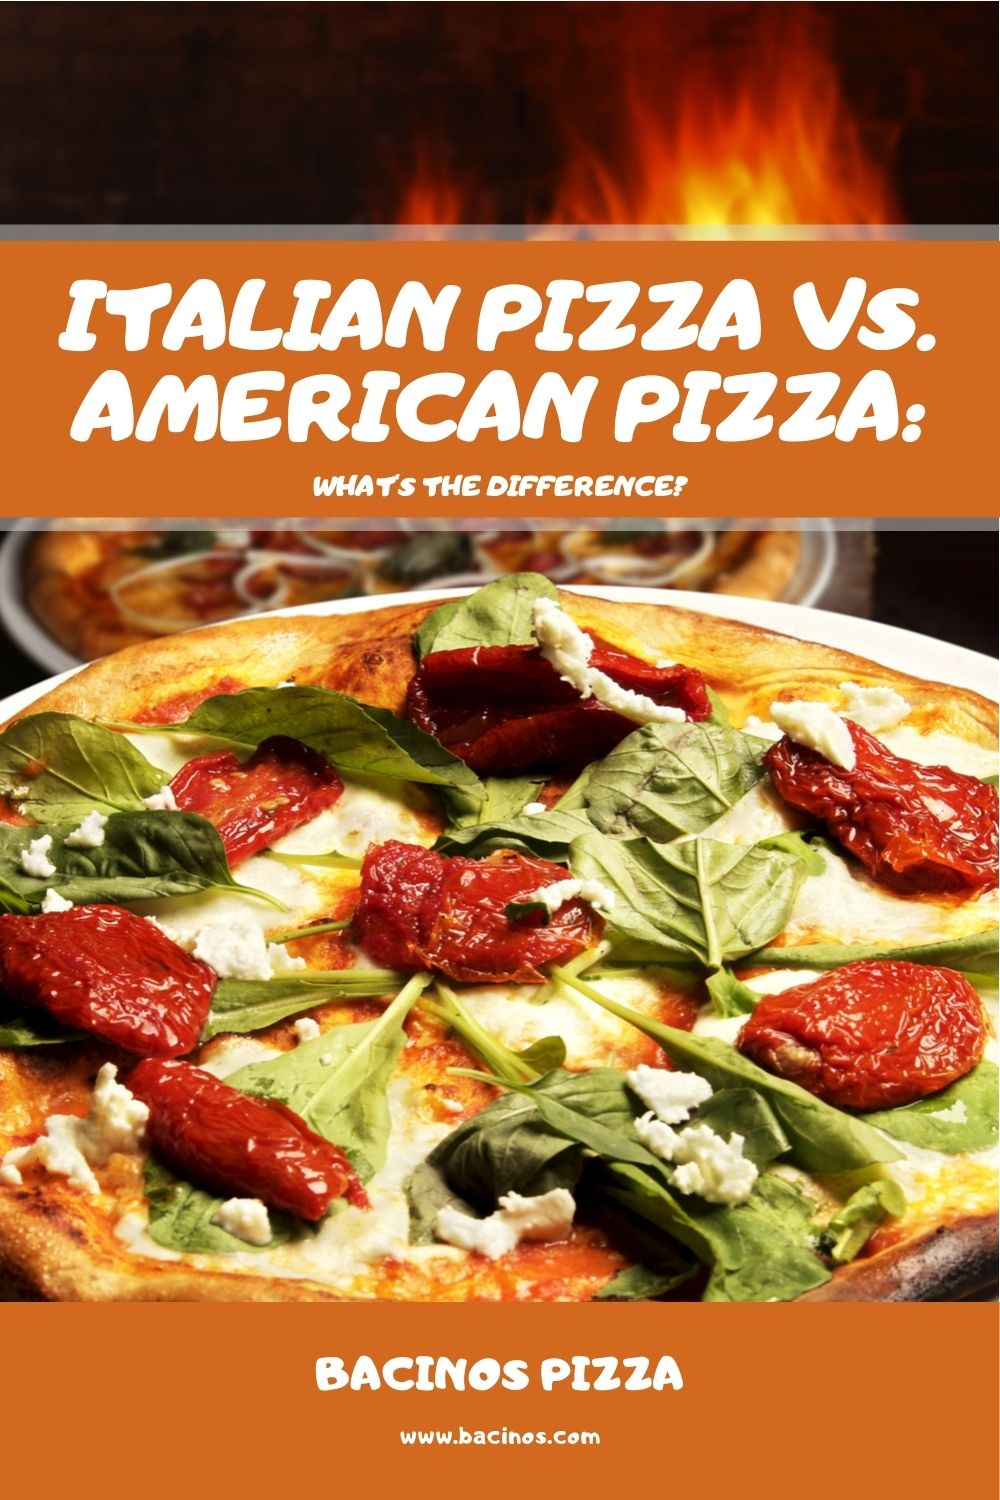 Italian Pizza vs. American Pizza What's the Difference 1